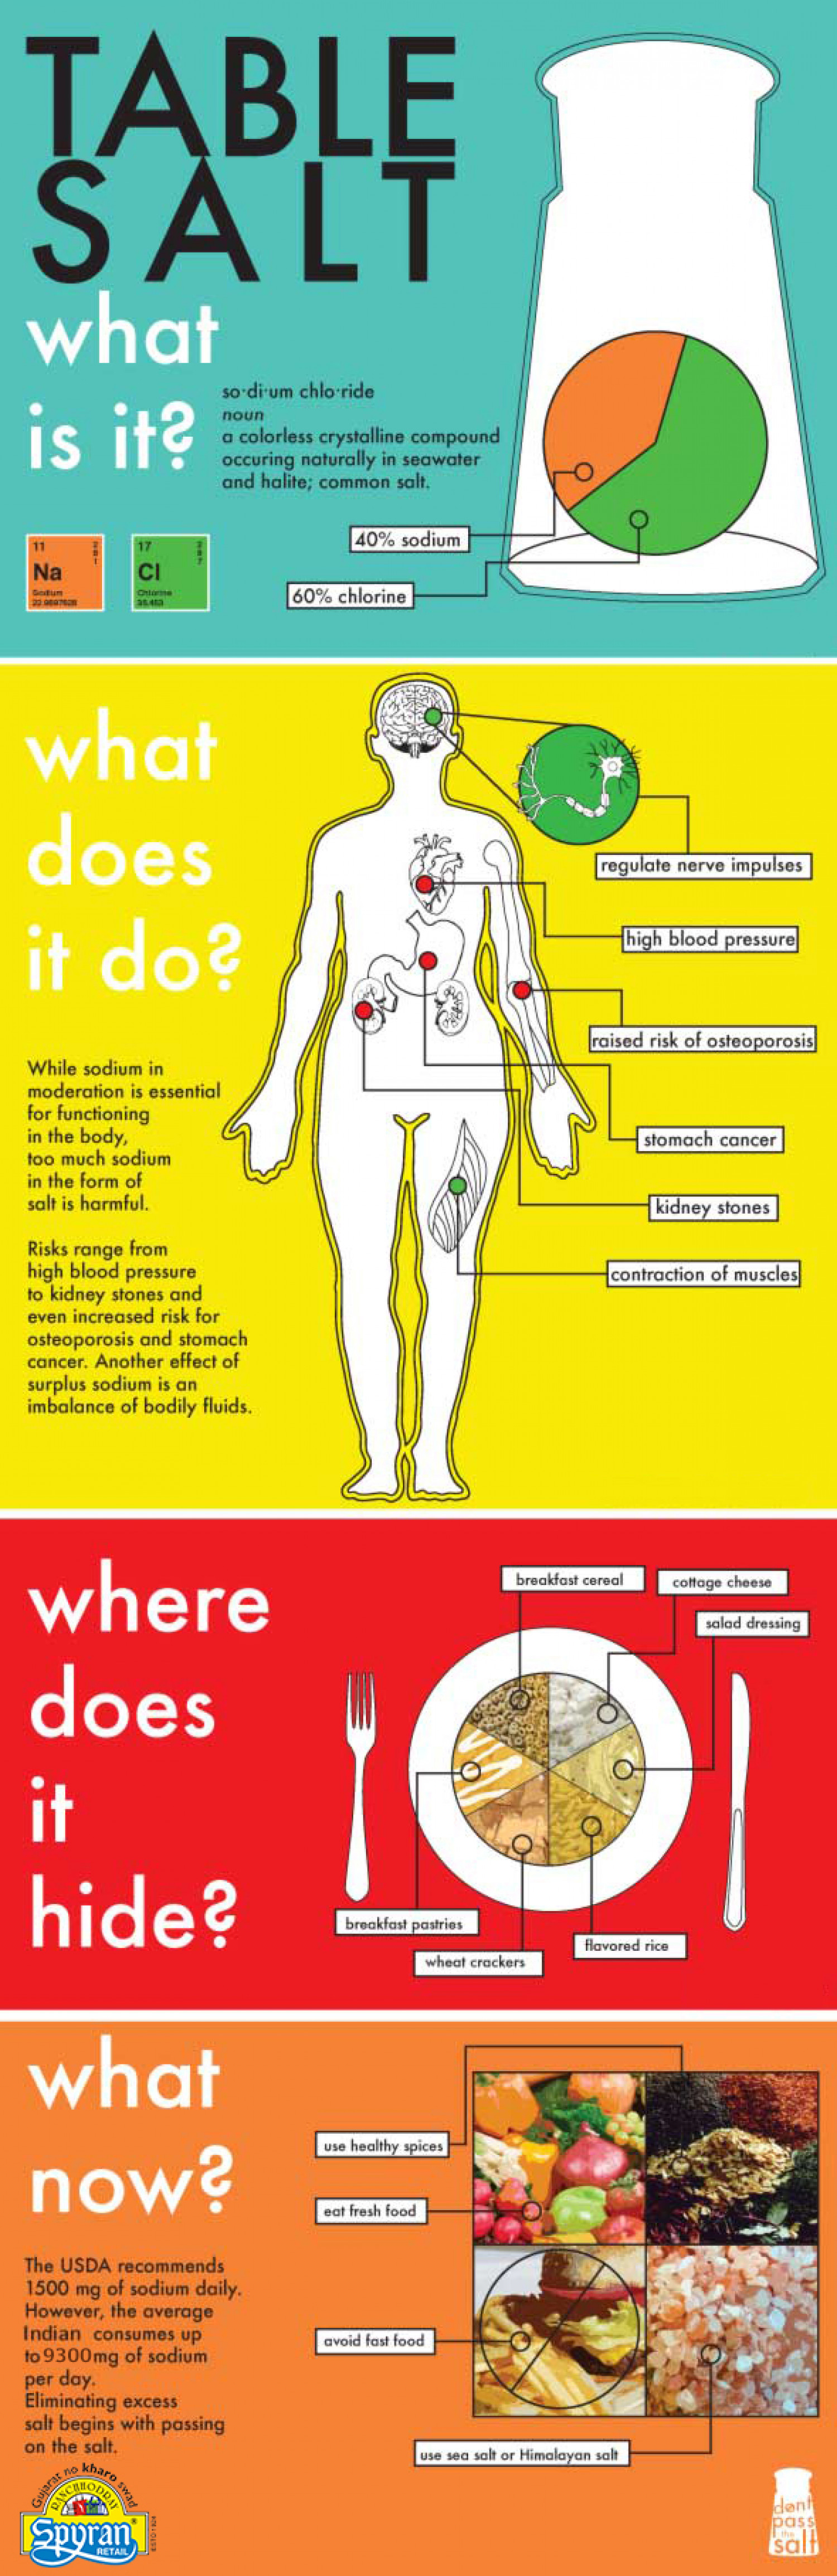 Table Salte-What is it? Infographic